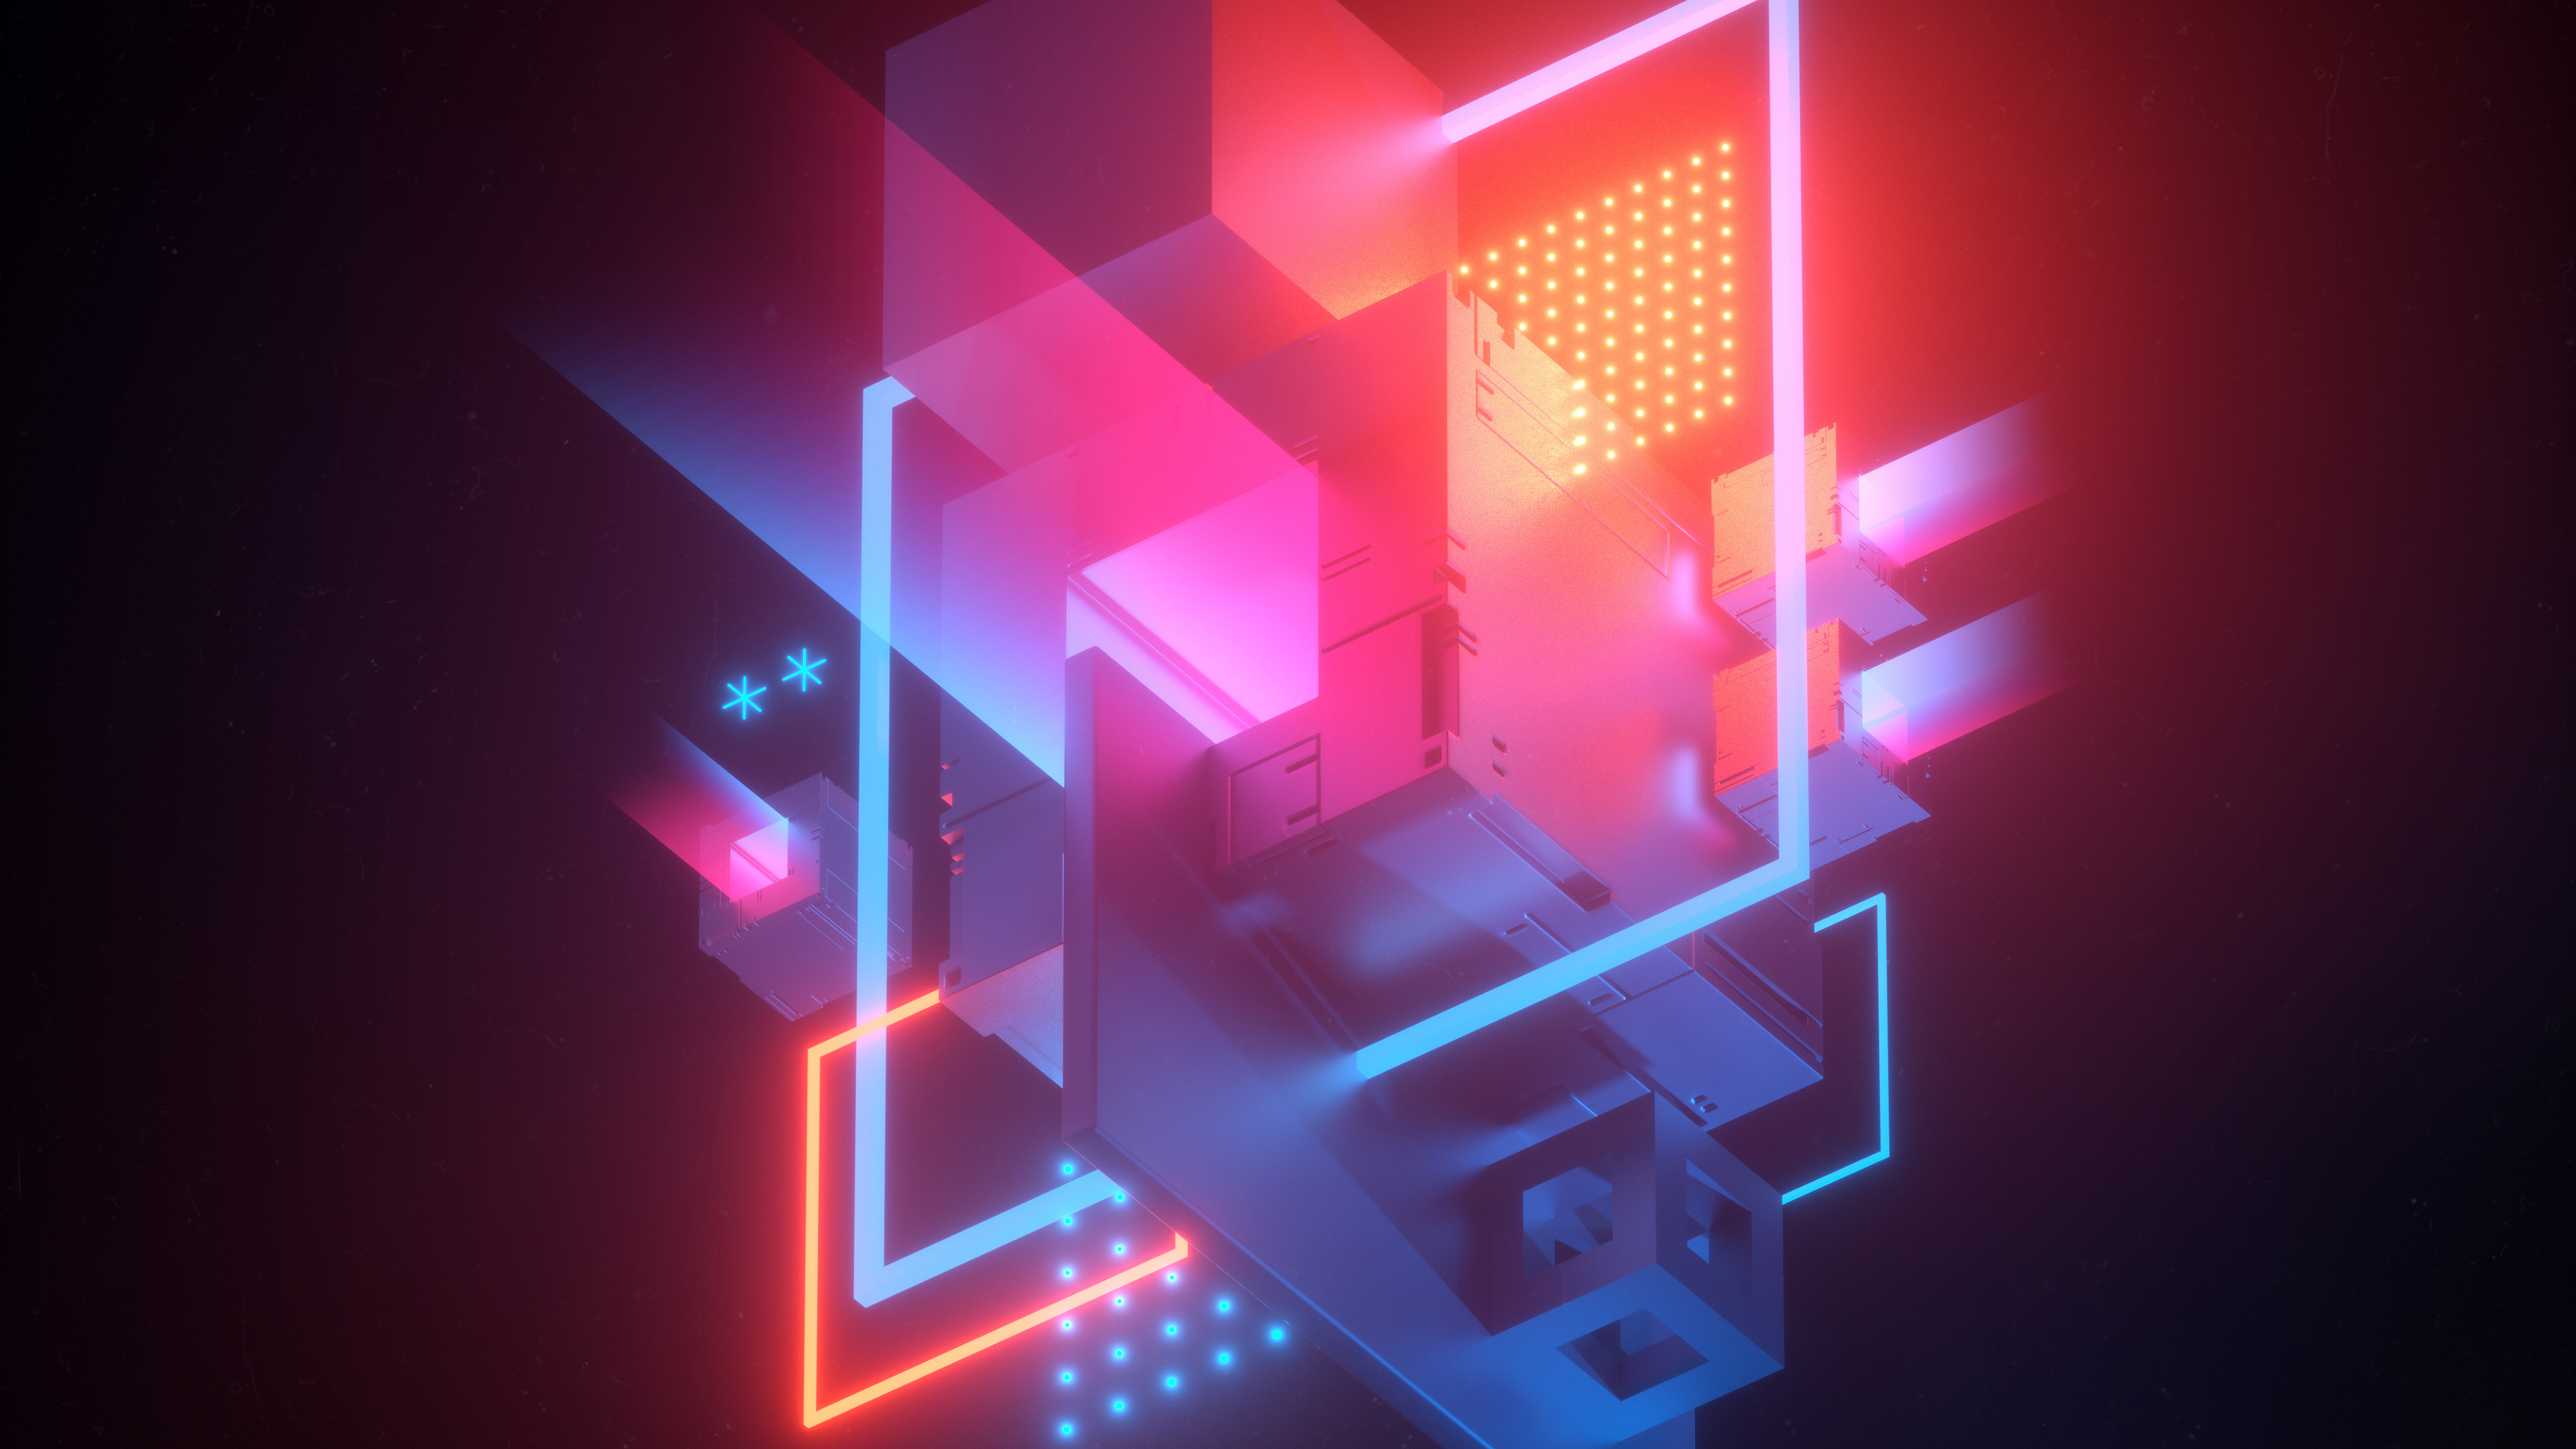 Download 3840x2160 wallpaper abstract, conflict, geometric ...